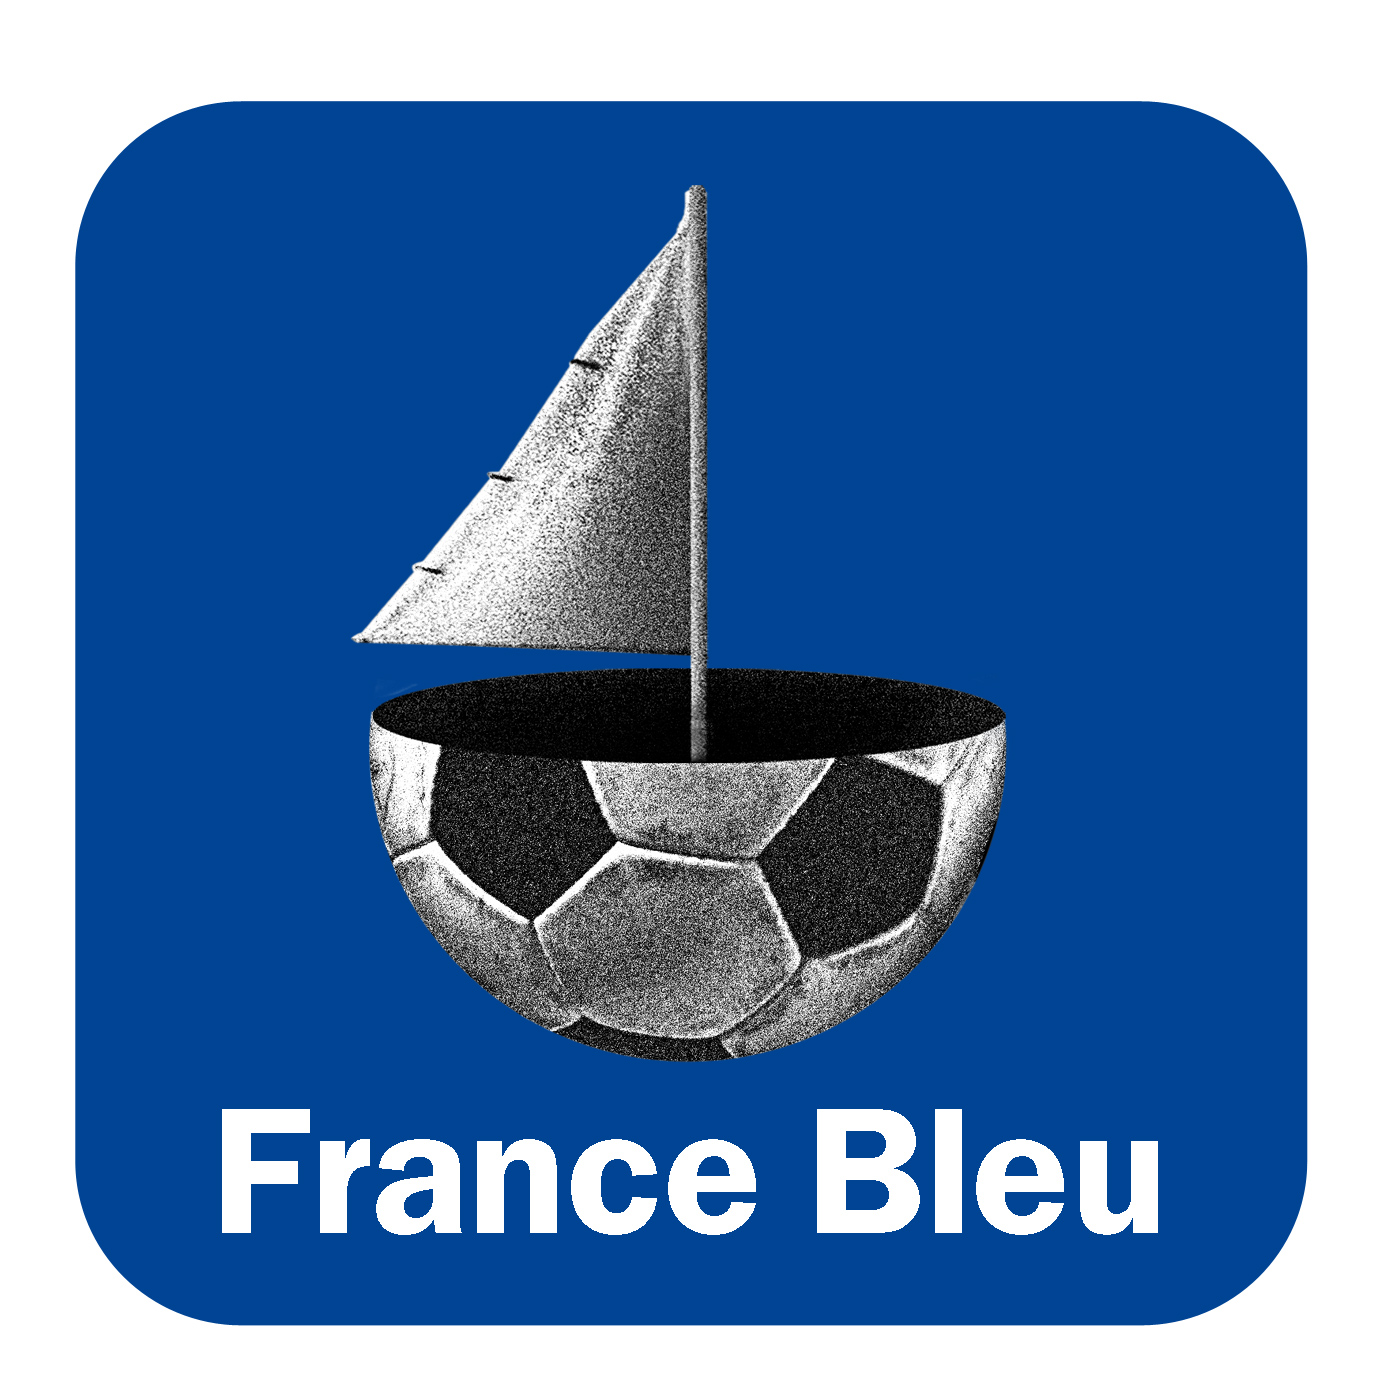 Normandie sports France Bleu Basse Normandie